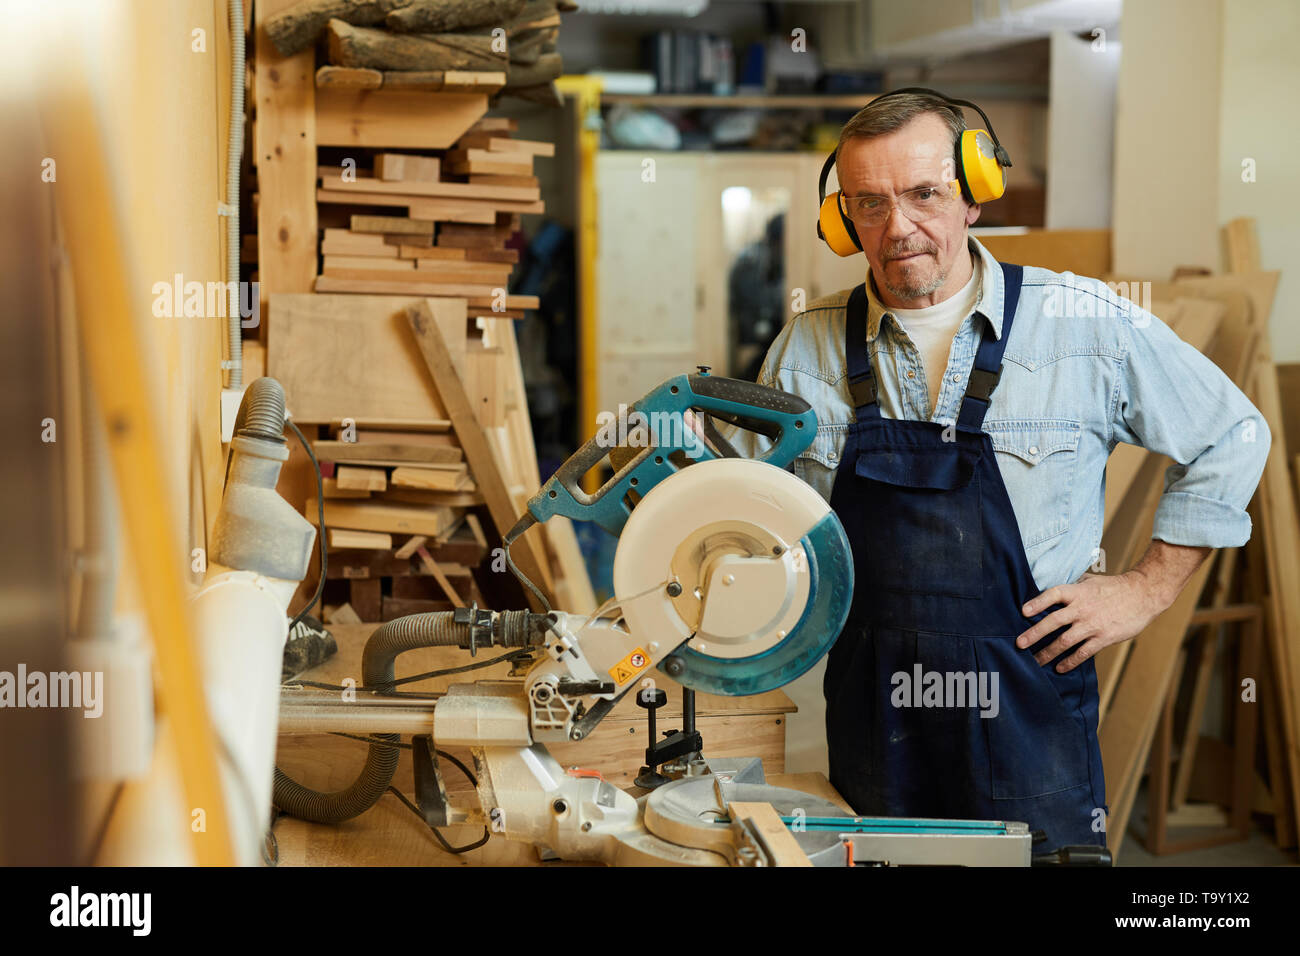 Waist up portrait of senior carpenter posing standing by disksawwhile working in joinery, copy space - Stock Image